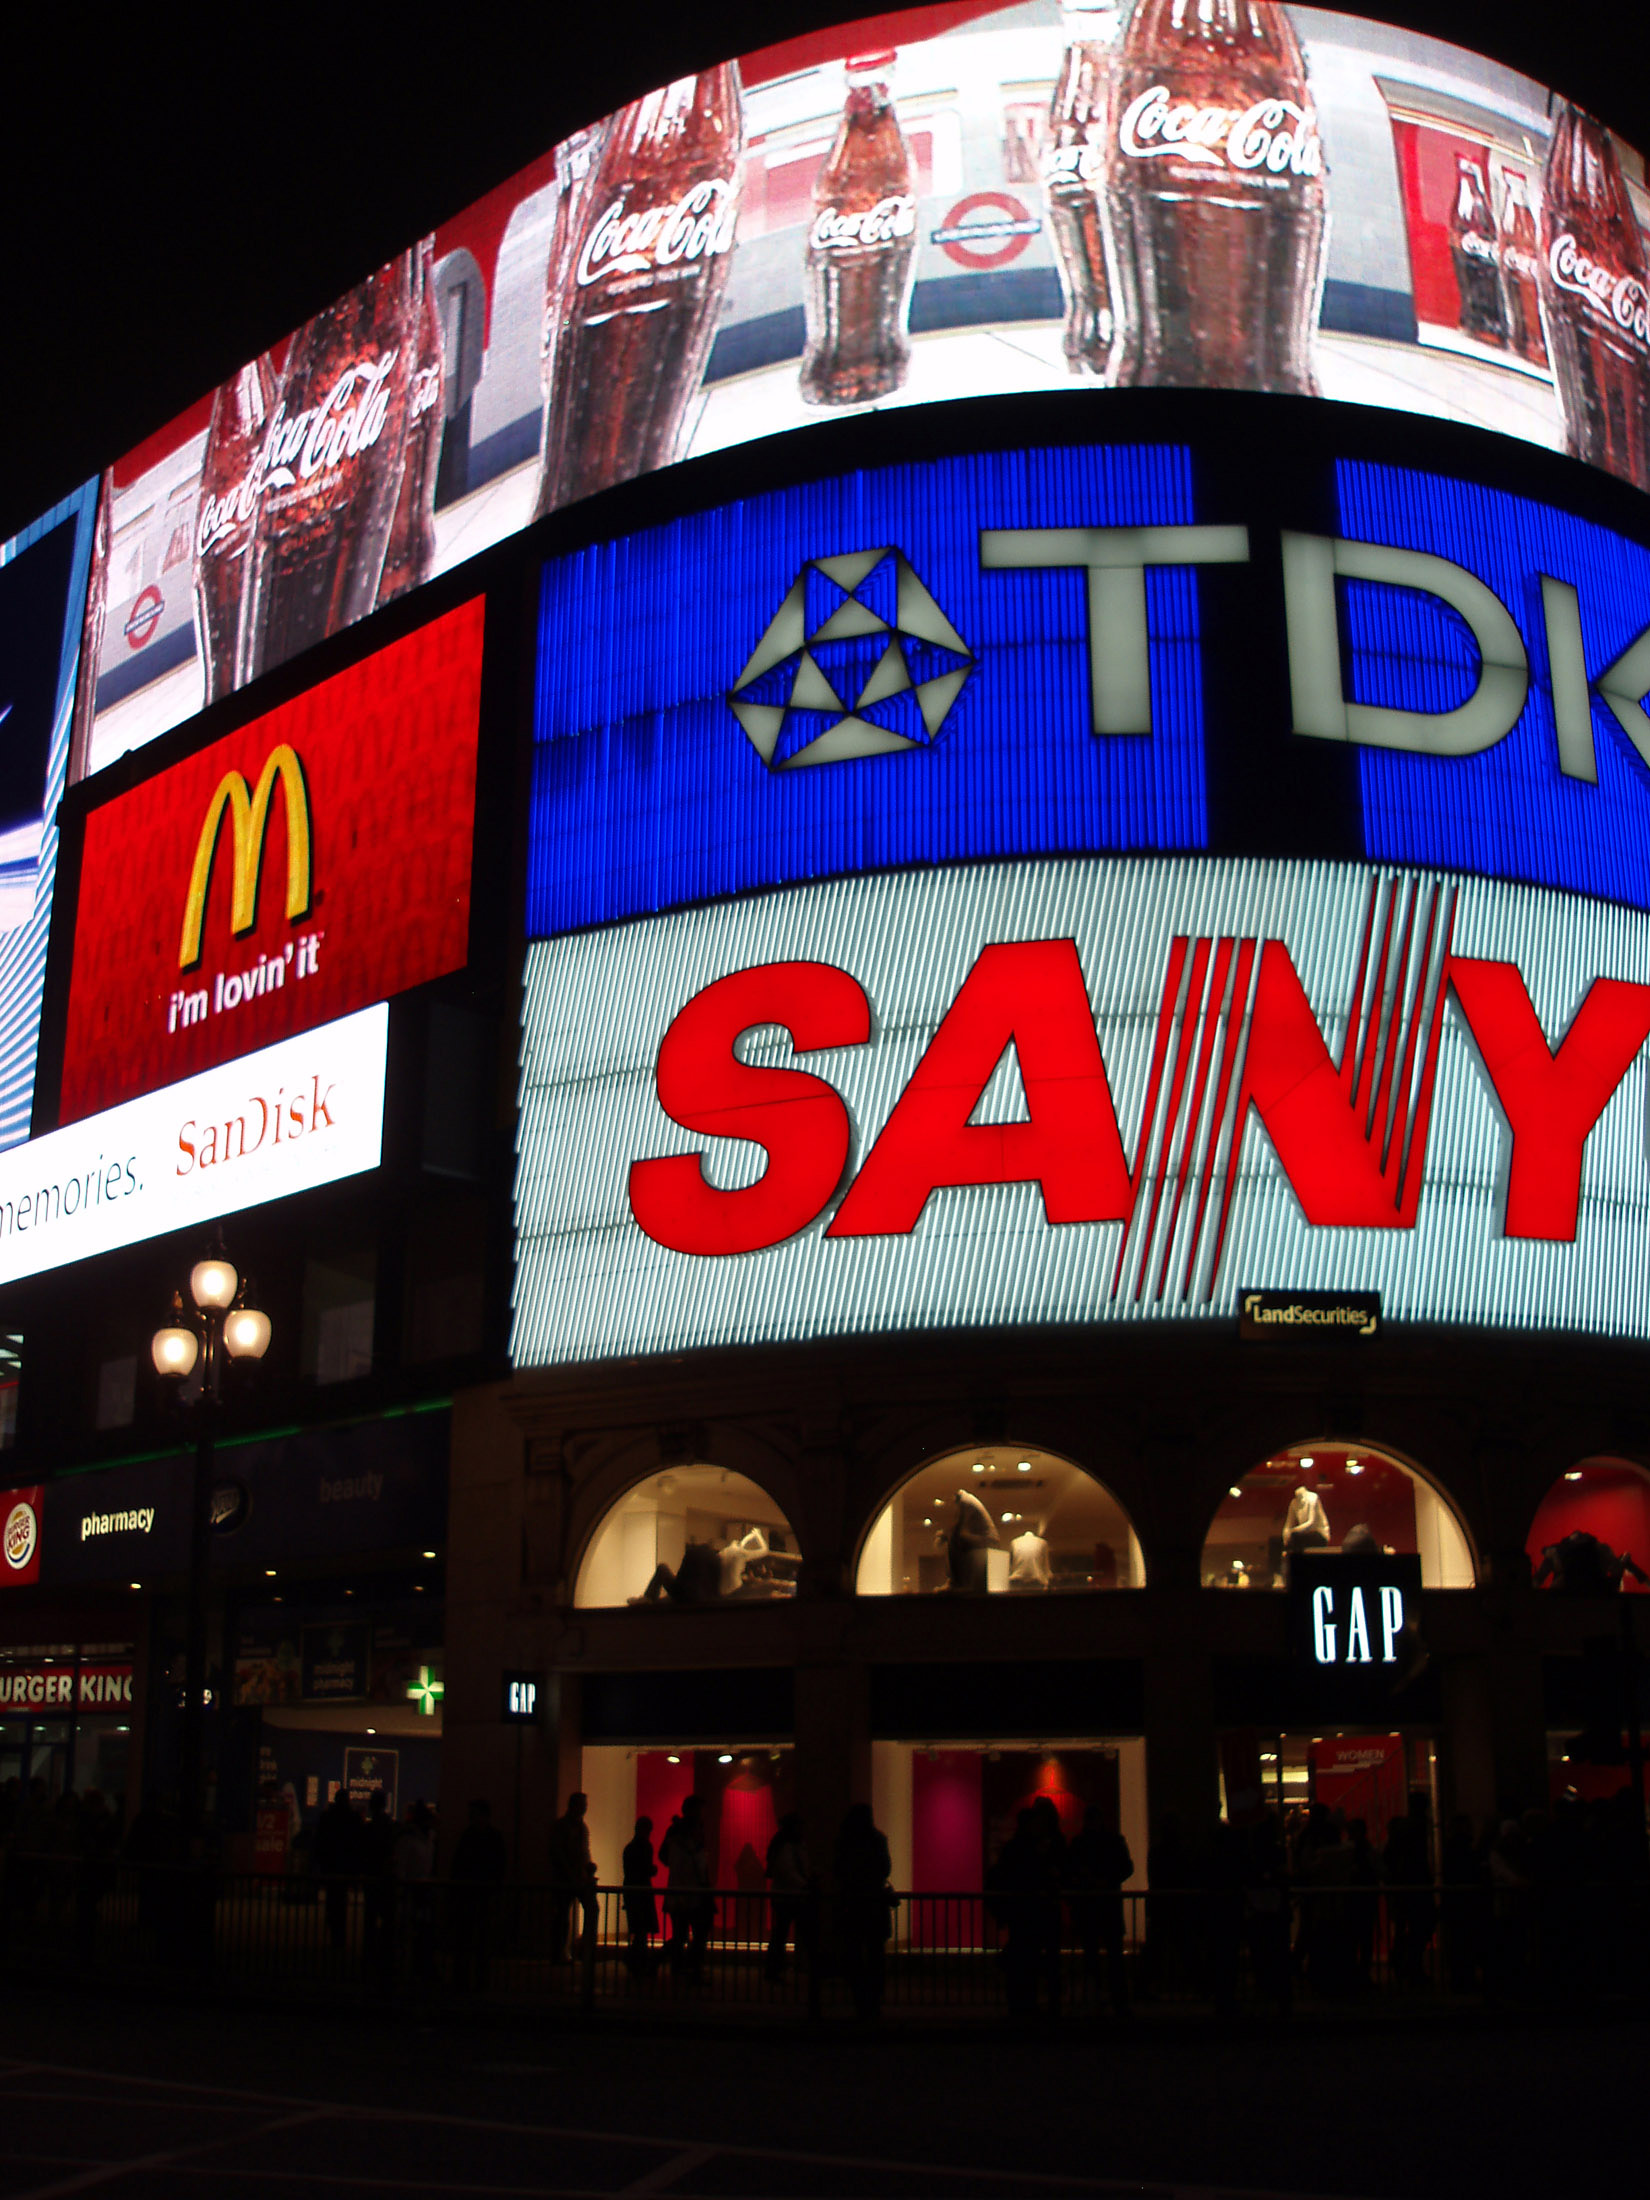 Colorful neon lights and advertising signs at Piccadilly Circus, London illuminated at night